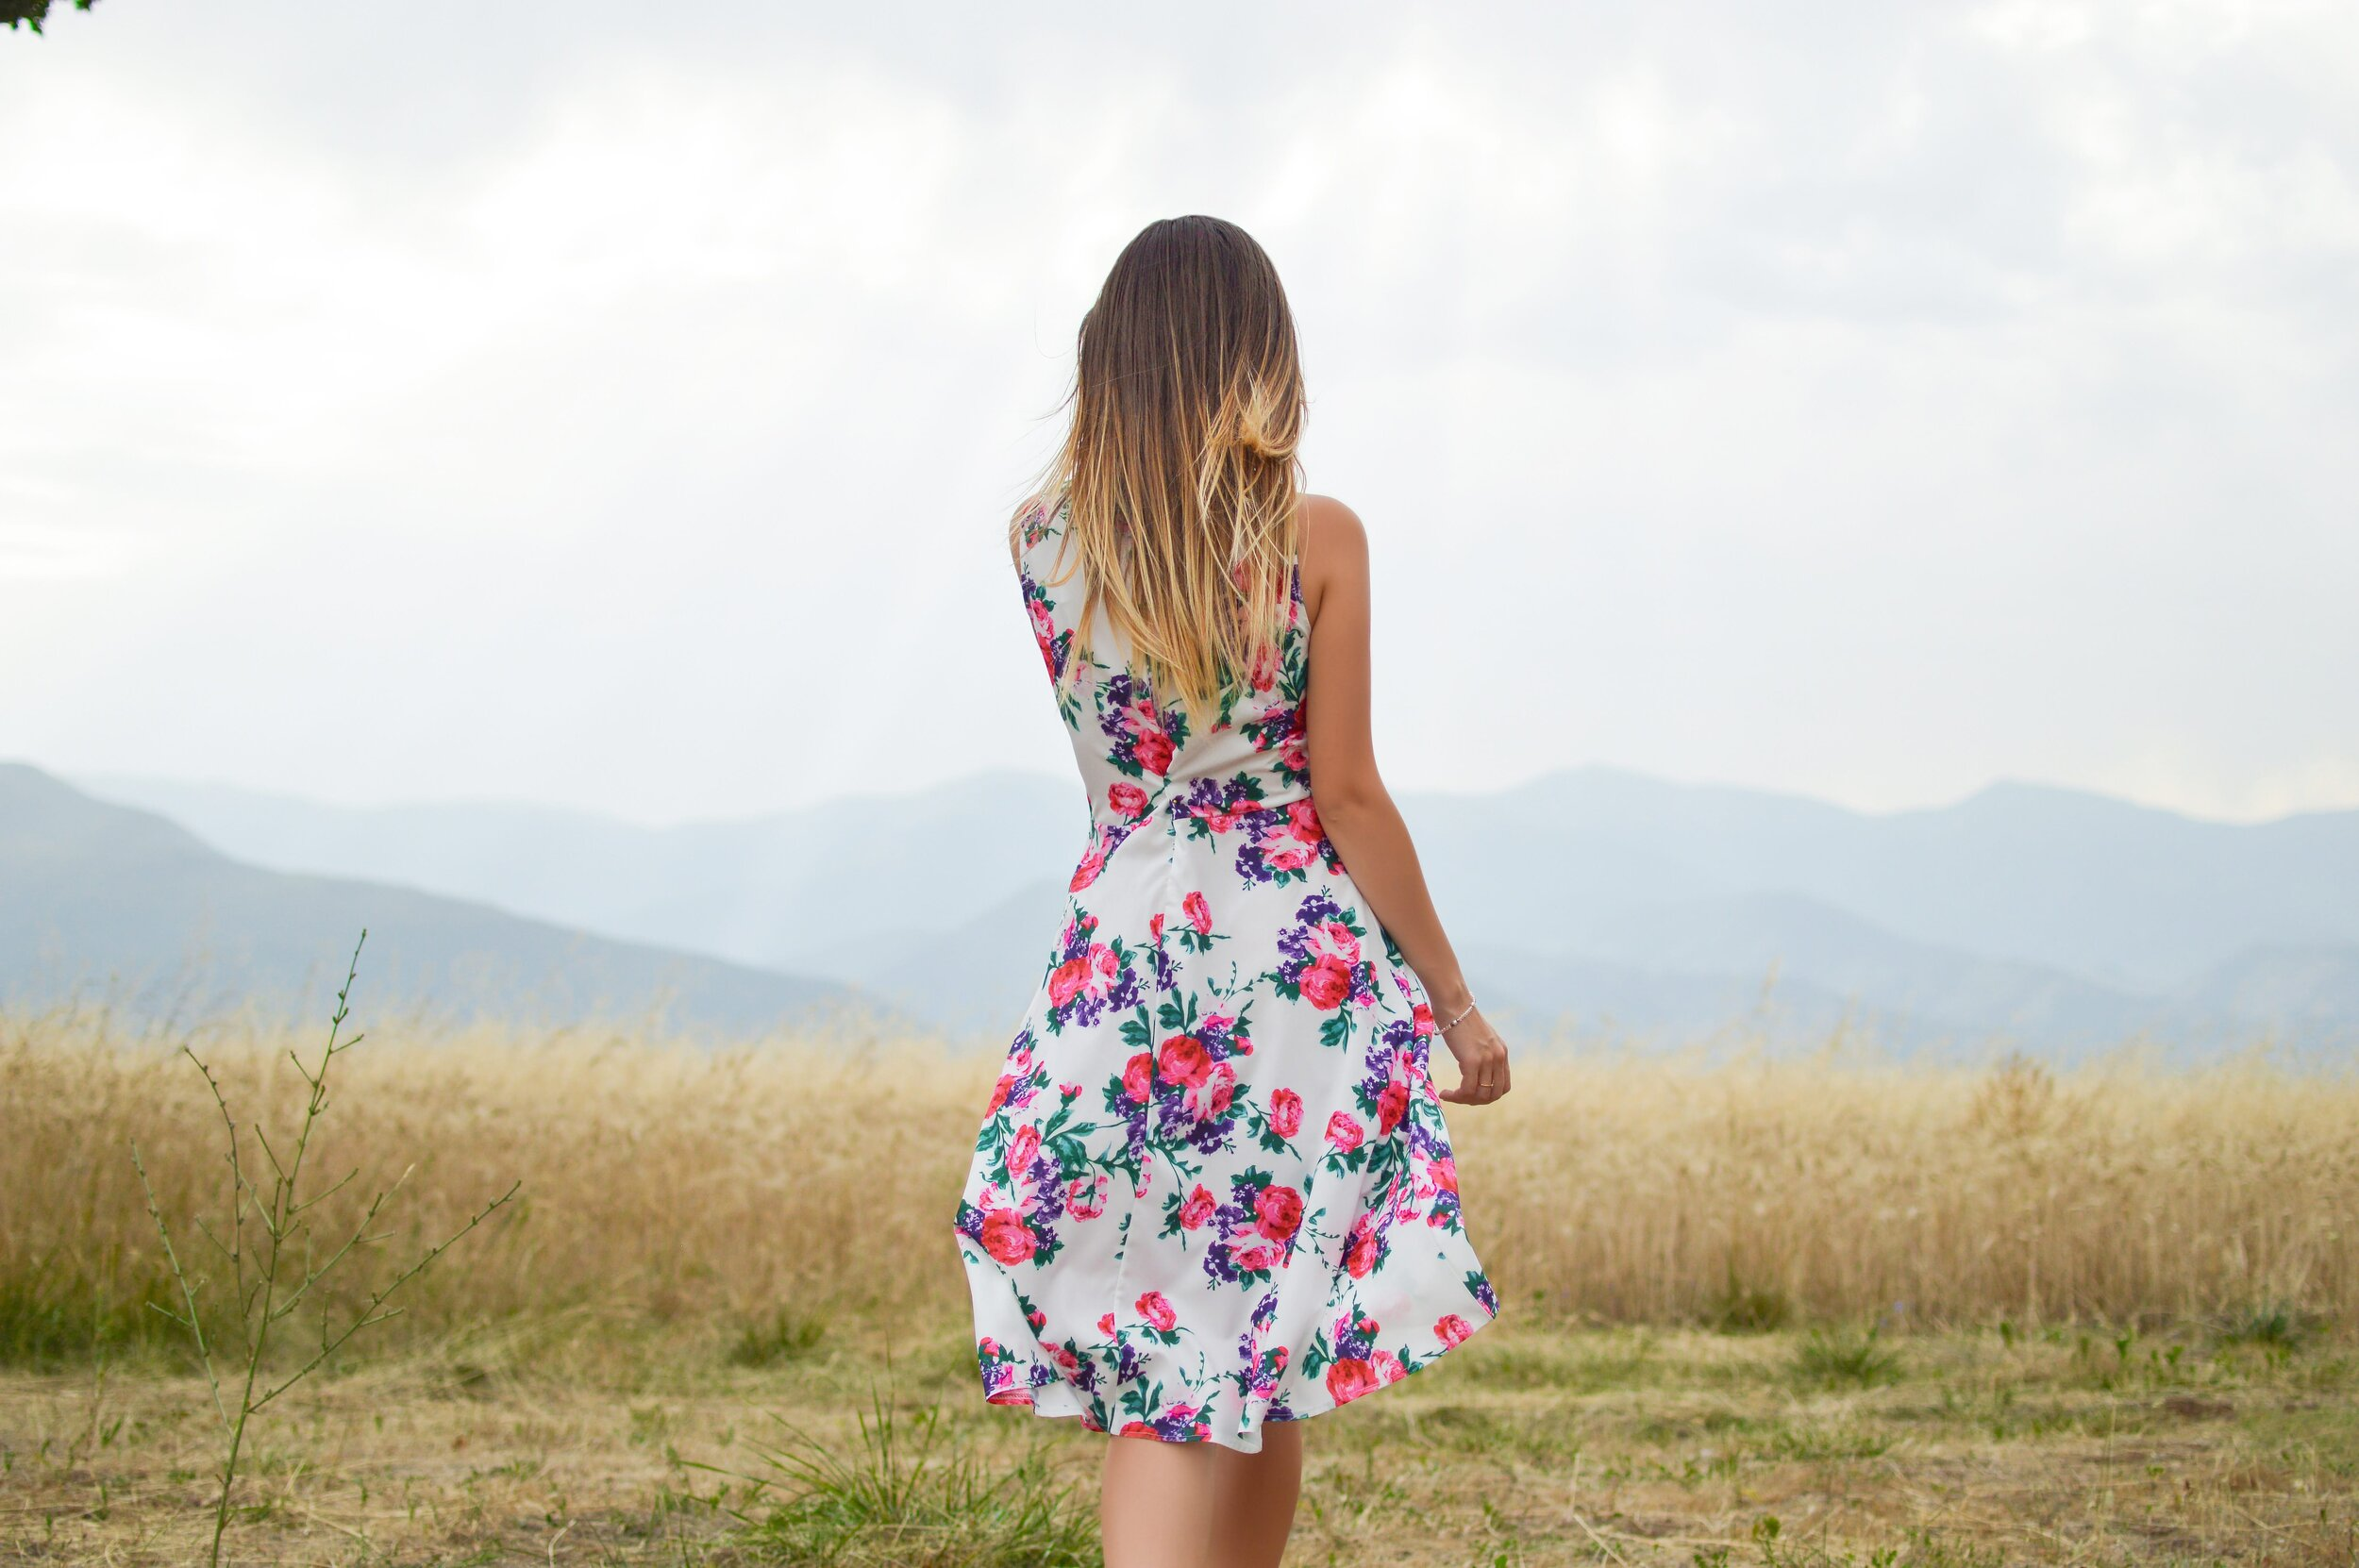 Girl with pear shaped body wearing sleeveless dress with gored skirt to widen shoulders and emphasize waist.